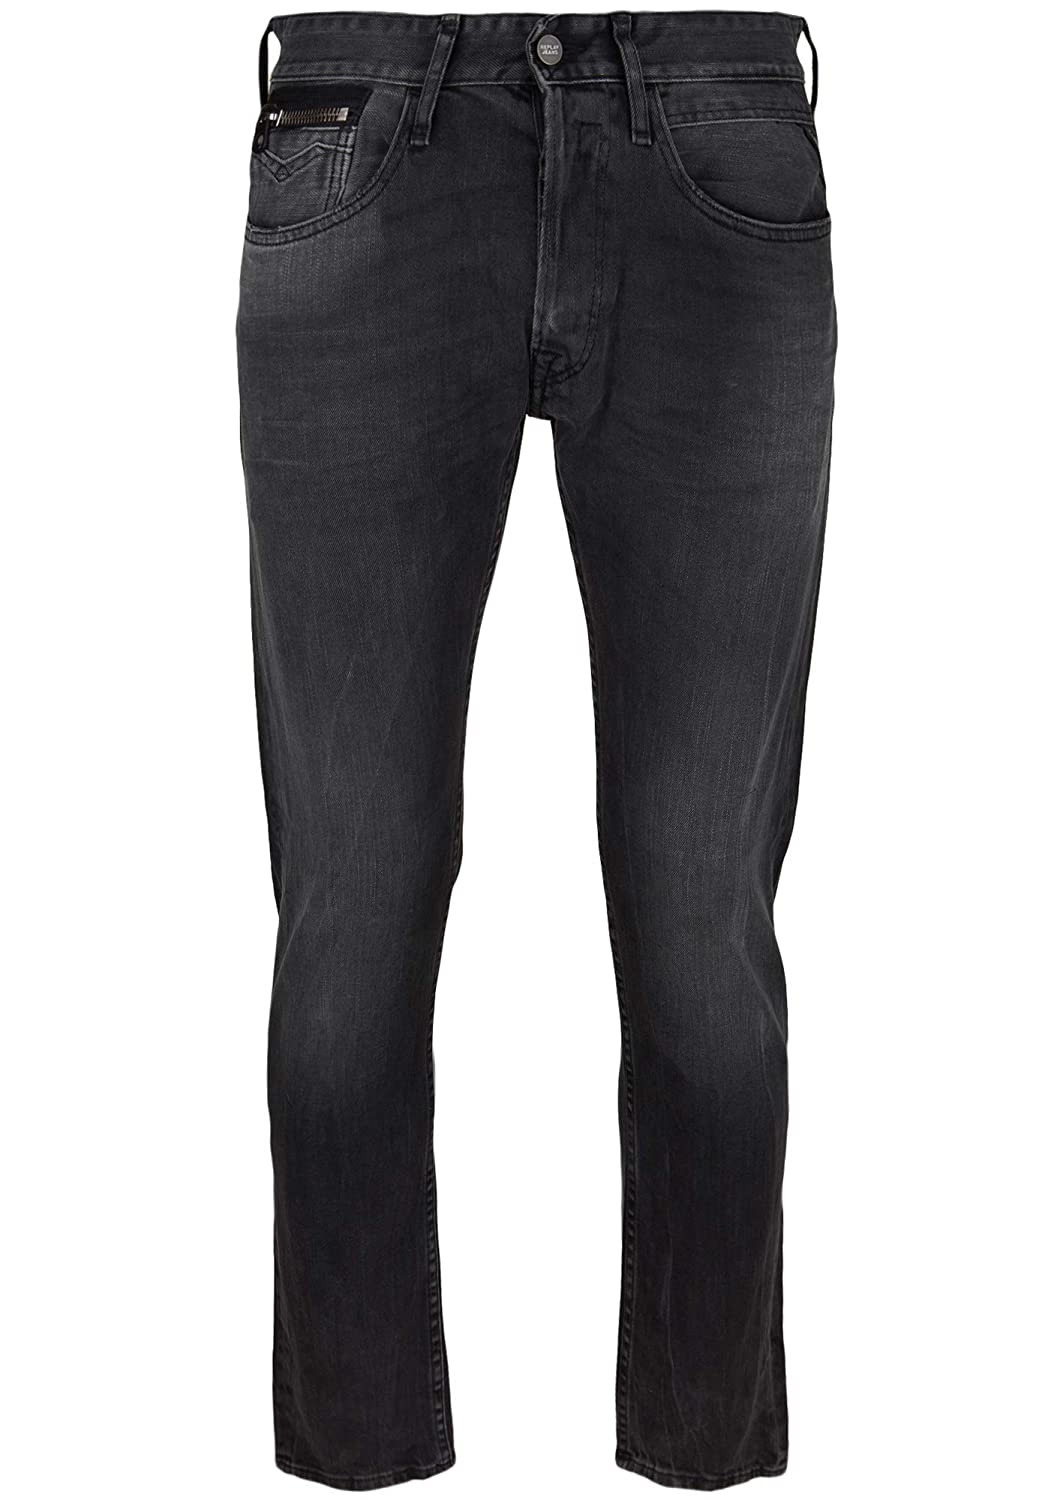 Replay Newbill Zipped Jeans Uomo